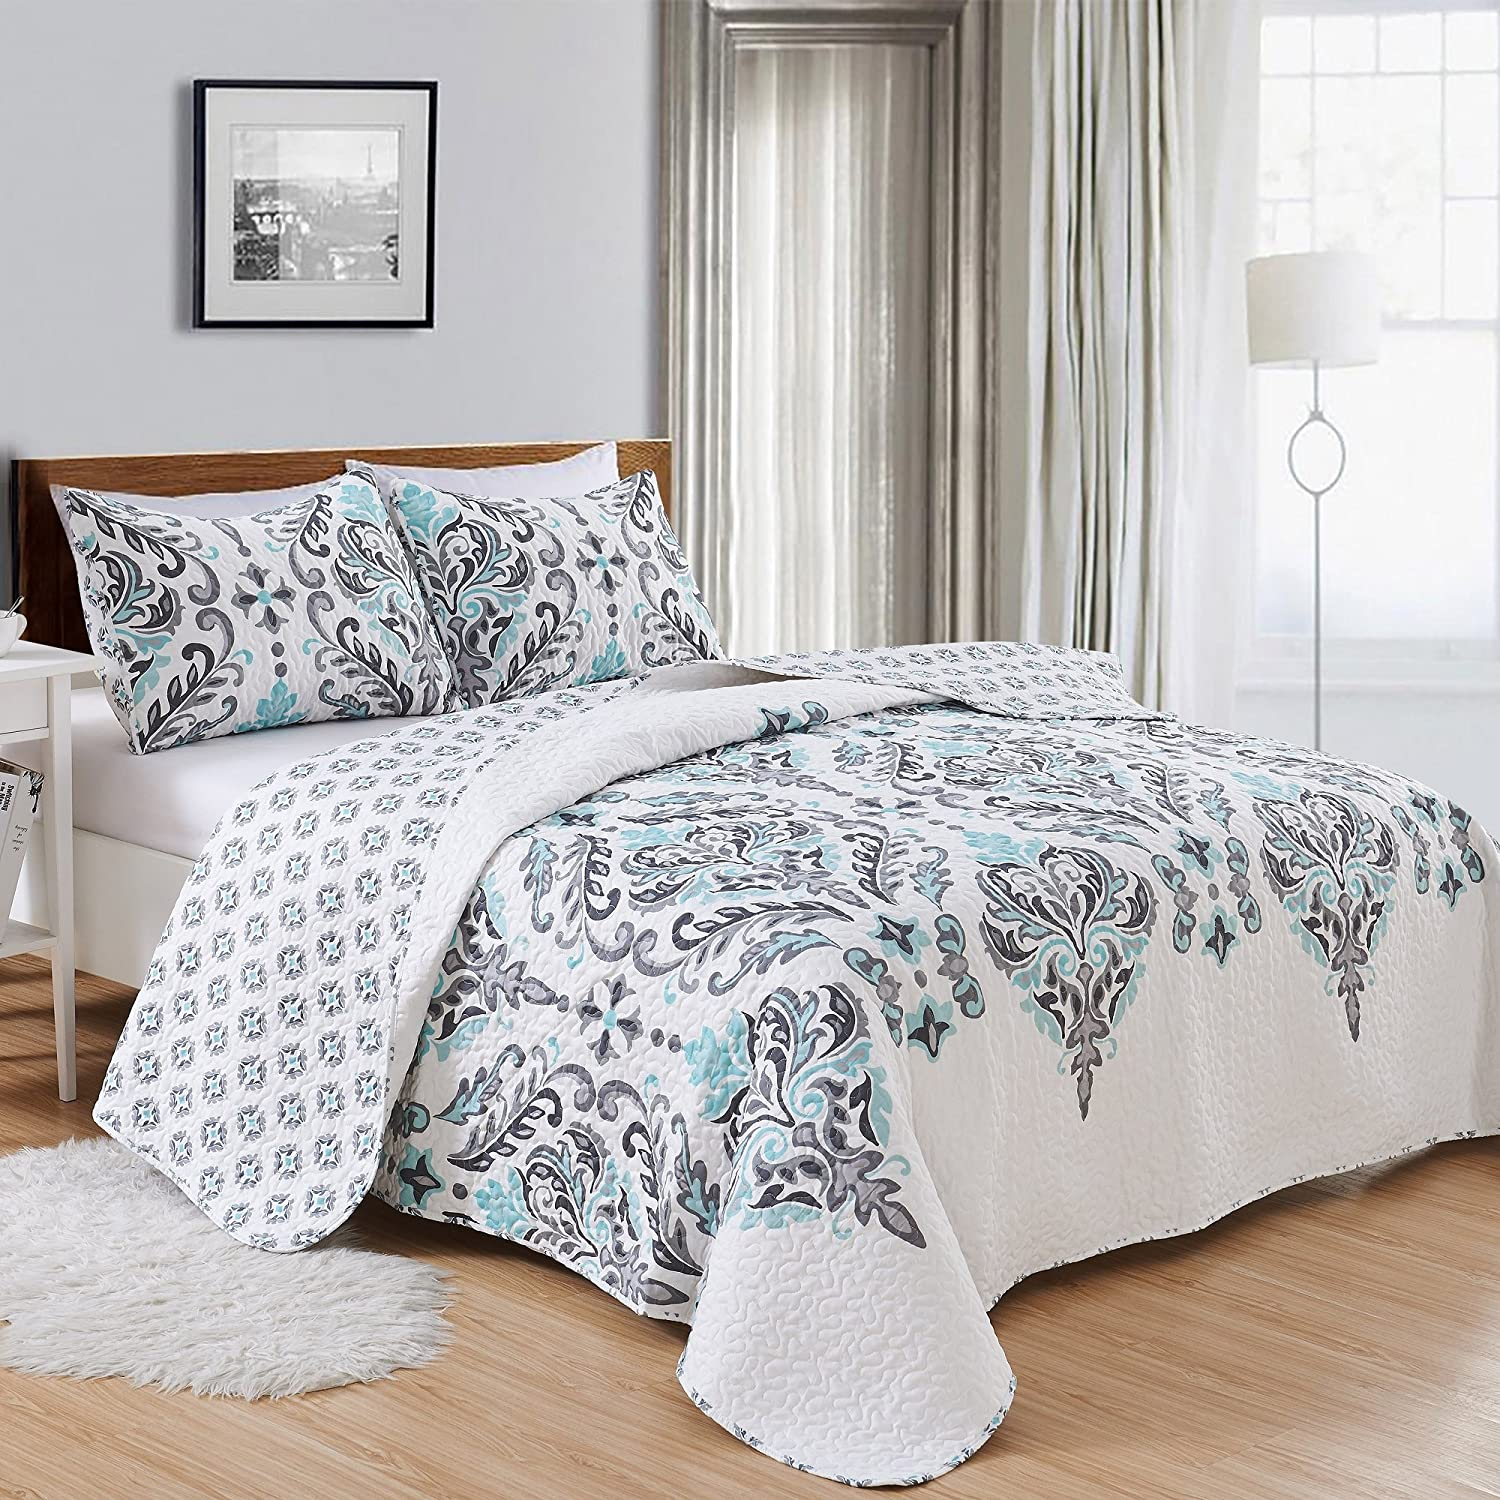 Great Bay Home 3-Piece Printed Quilt Set with Shams. All-Season Cotton-Polyester Bedspread with Ornamental Geometric Pattern. Lauretta Collection Brand. (Full/Queen, Grey)